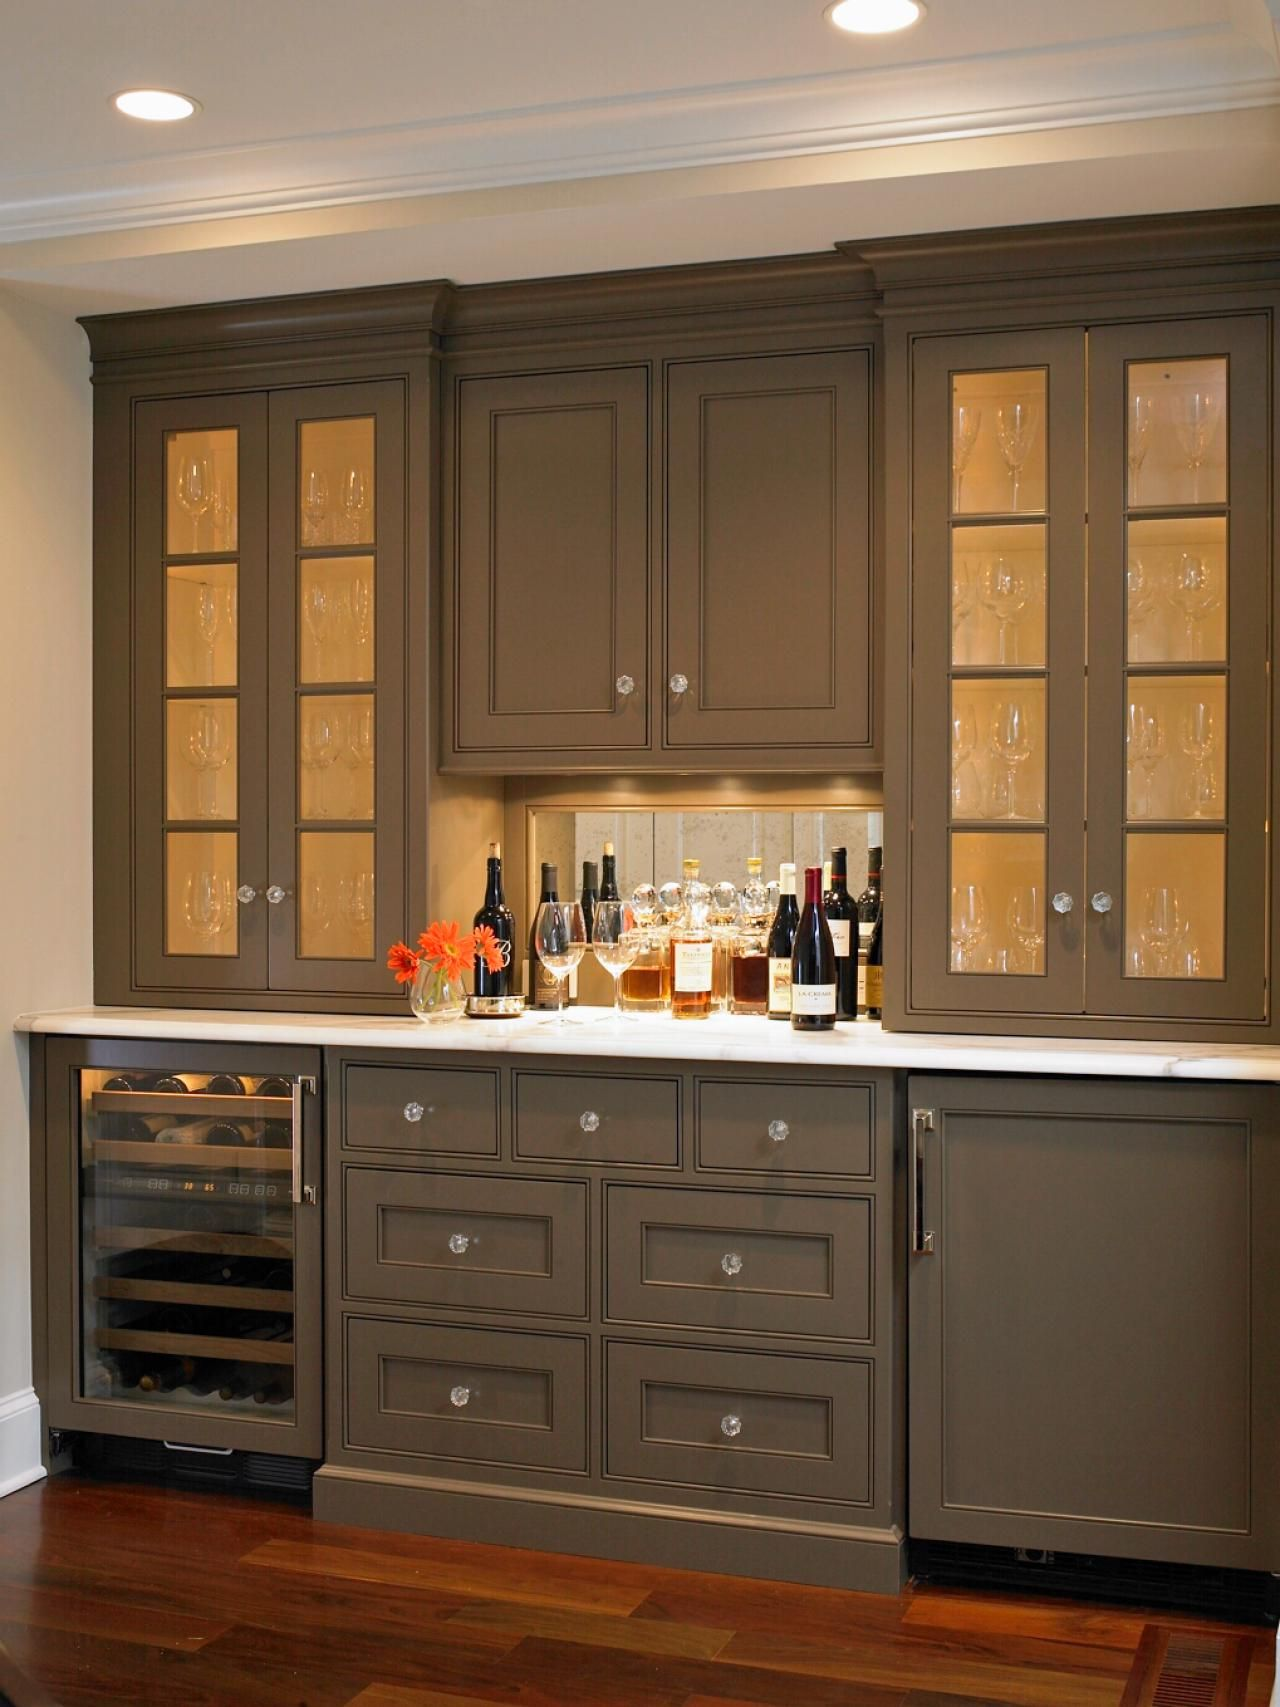 best pictures of kitchen cabinet color ideas from top designers design cabinets and ideas on kitchen cabinet color ideas id=40121